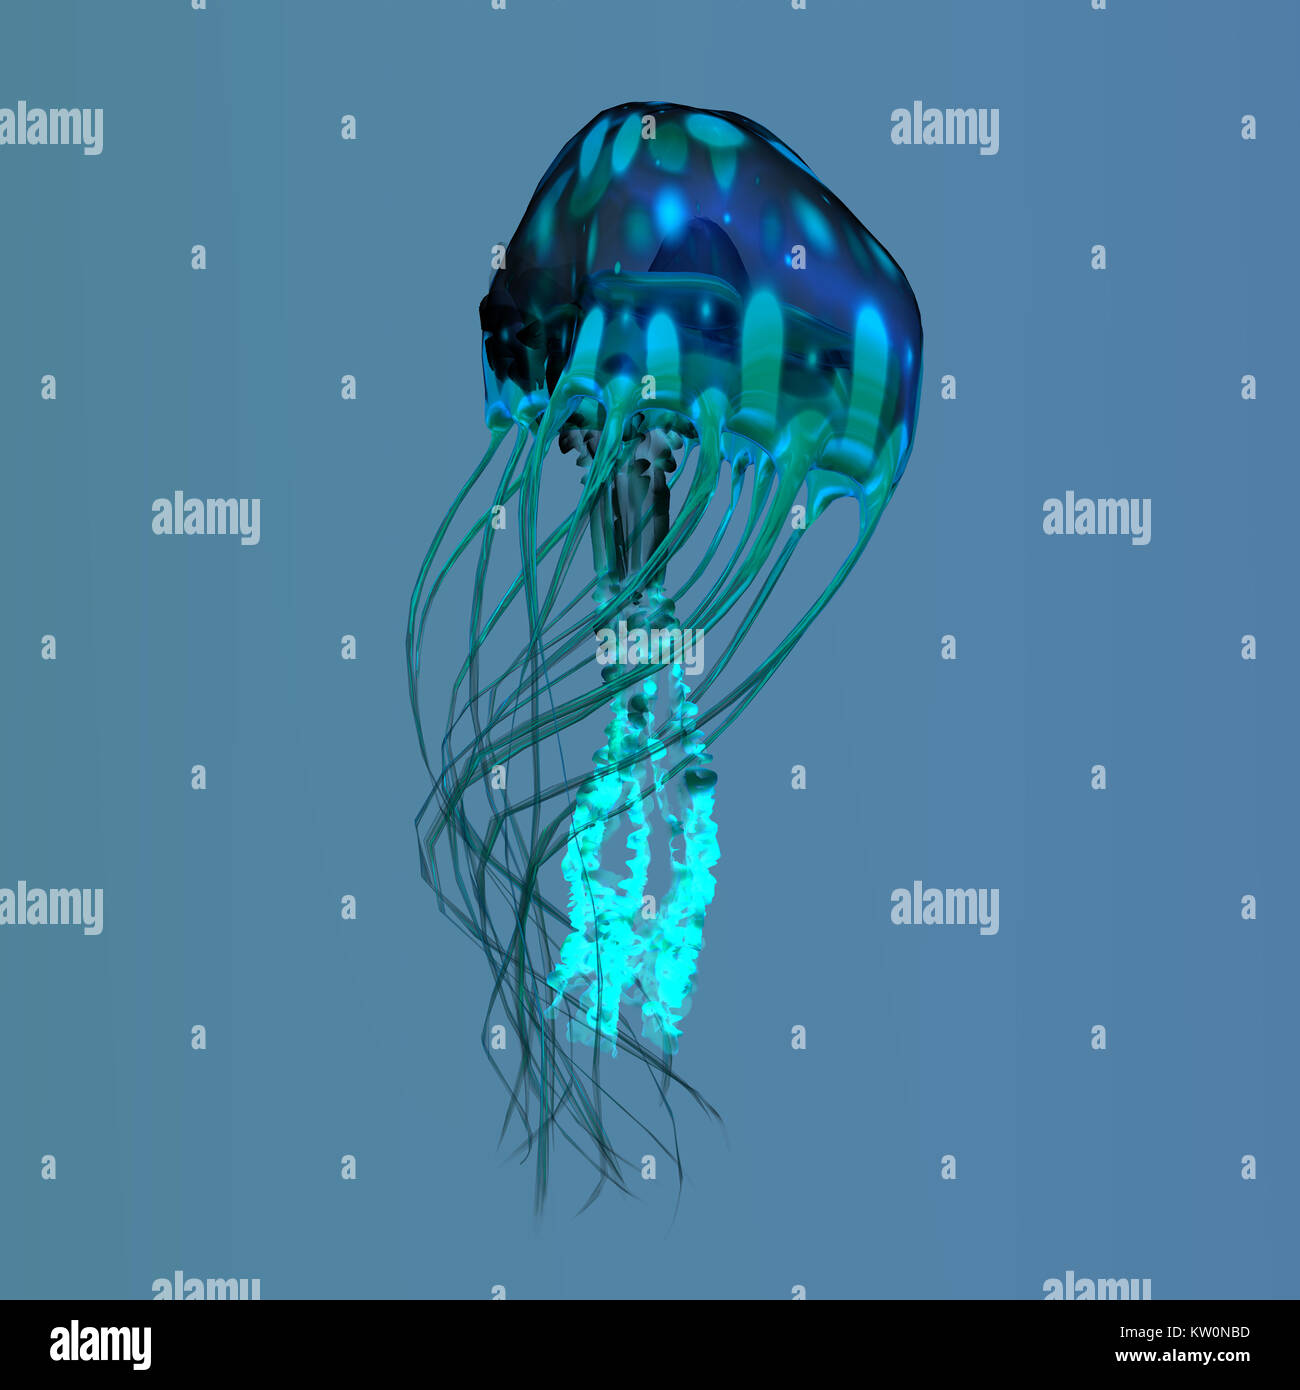 Blue Green Jellyfish - The ocean jellyfish searches for fish prey and uses its poisonous tentacles to subdue the - Stock Image